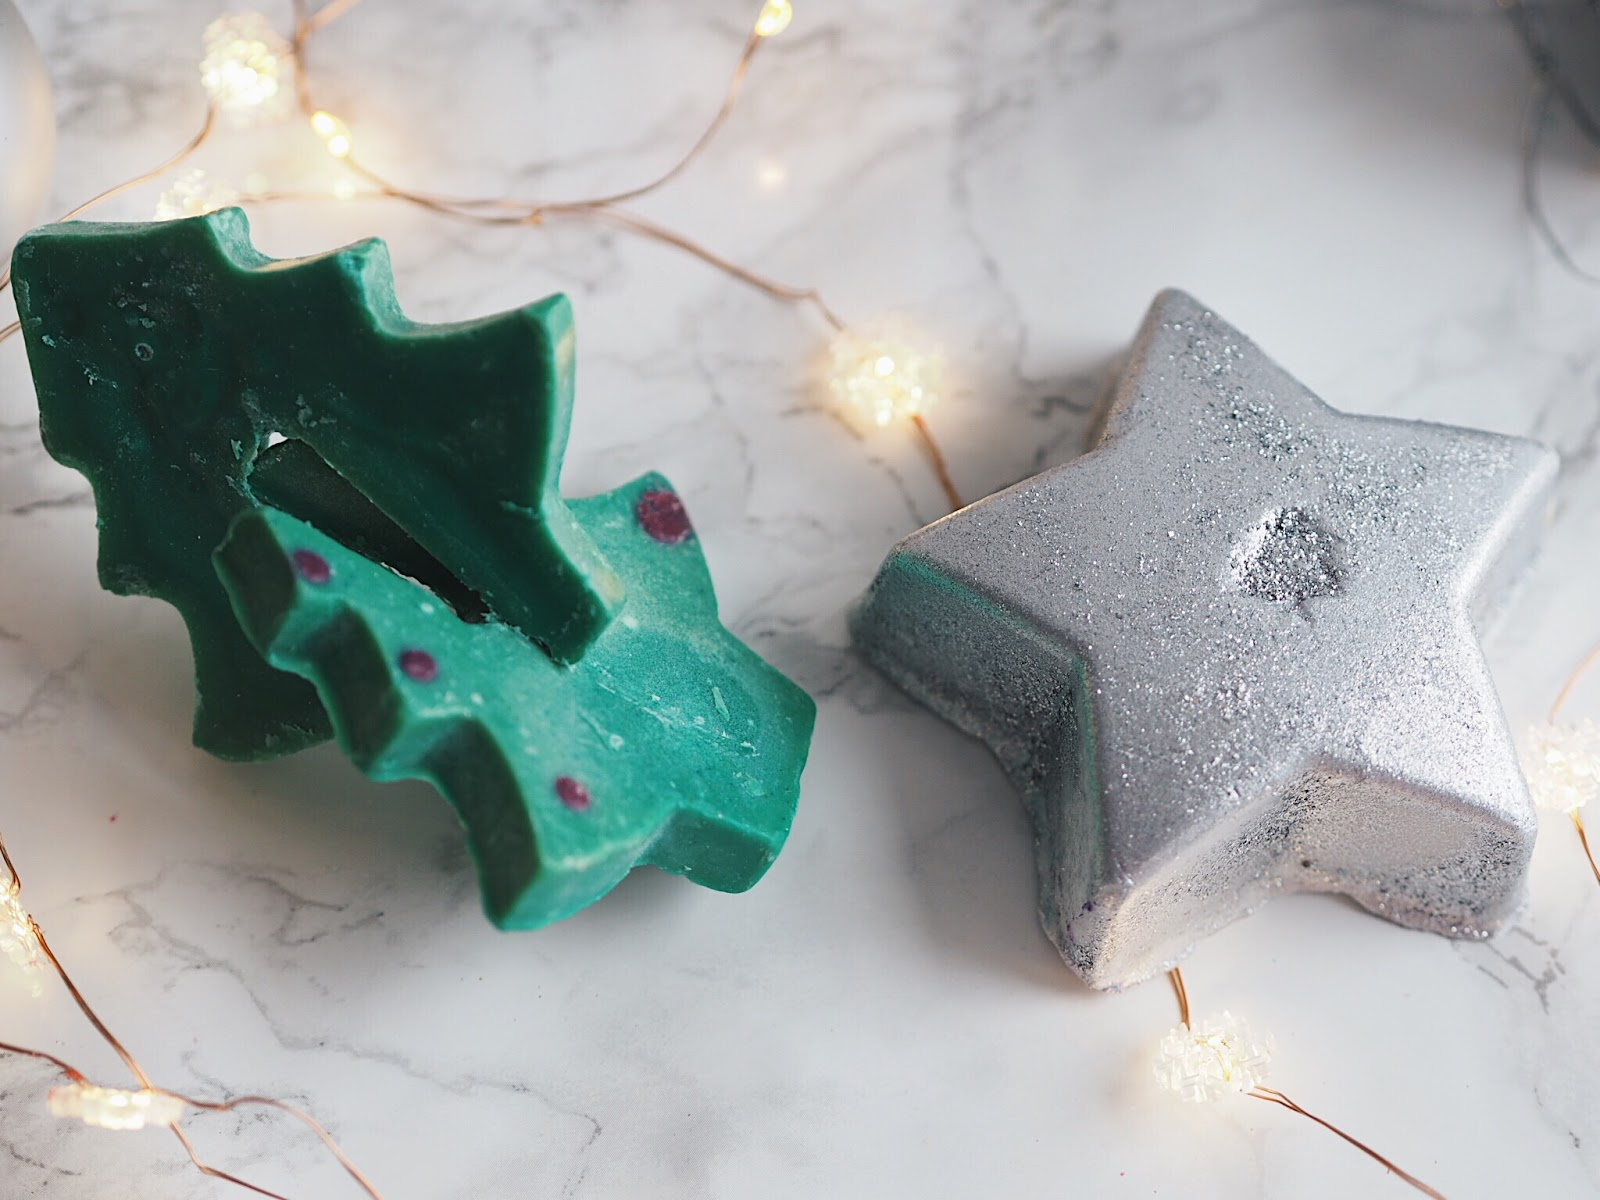 lush christmas 2017 bath oils melts